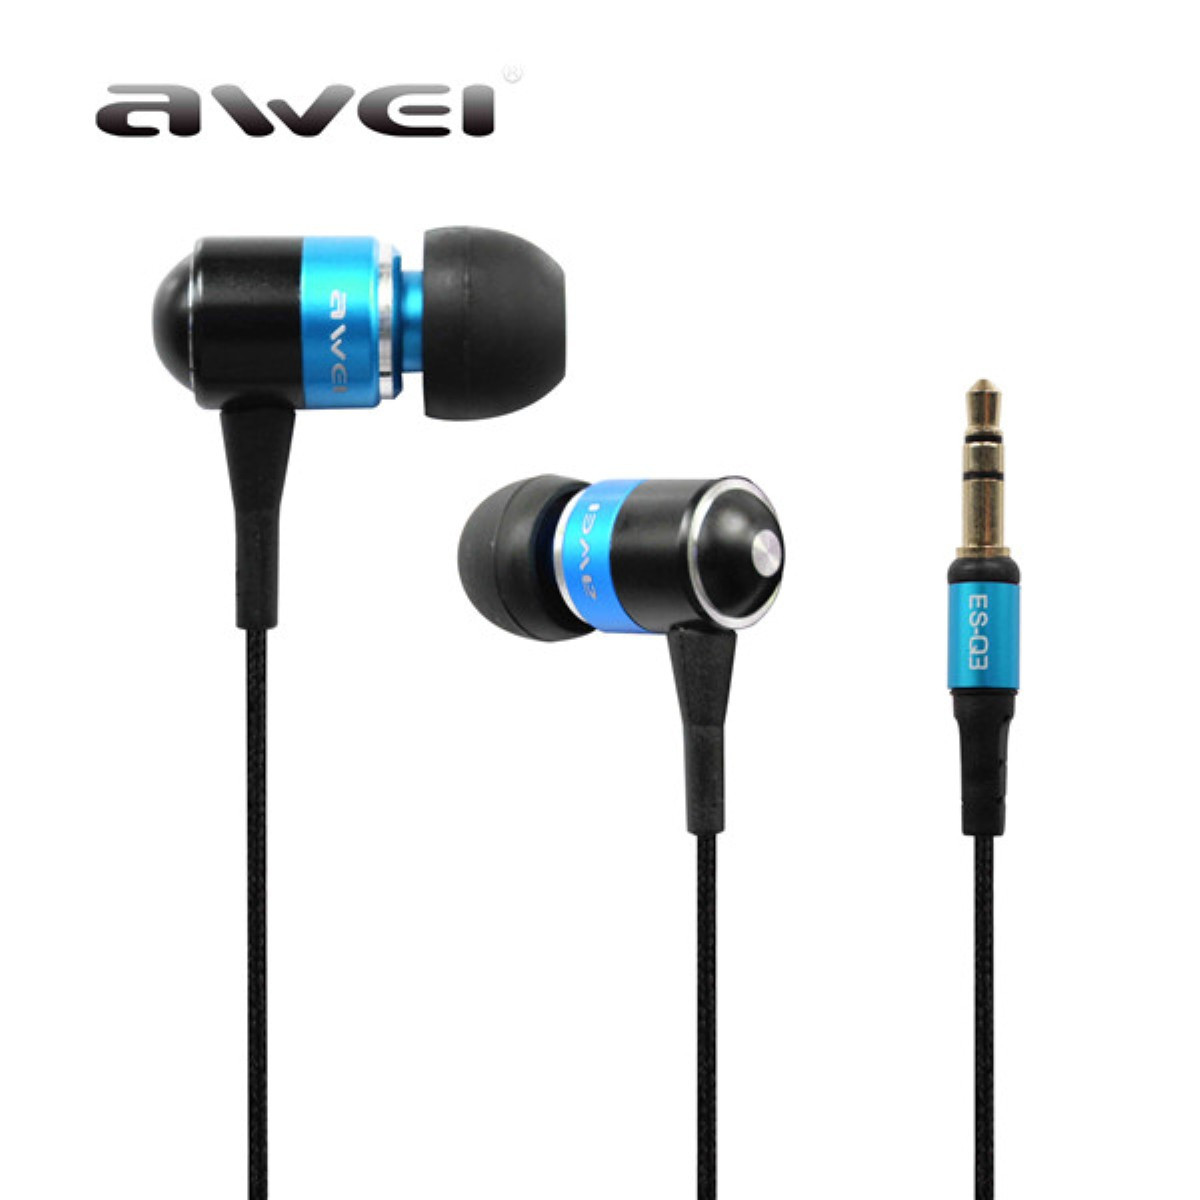 Fashion In-Ear Earphone Awei ES Q3 Stereo Earbuds Super Bass Sound Isolation Headset For iPhone Smartphone MP3/MP4 Players<br><br>Aliexpress